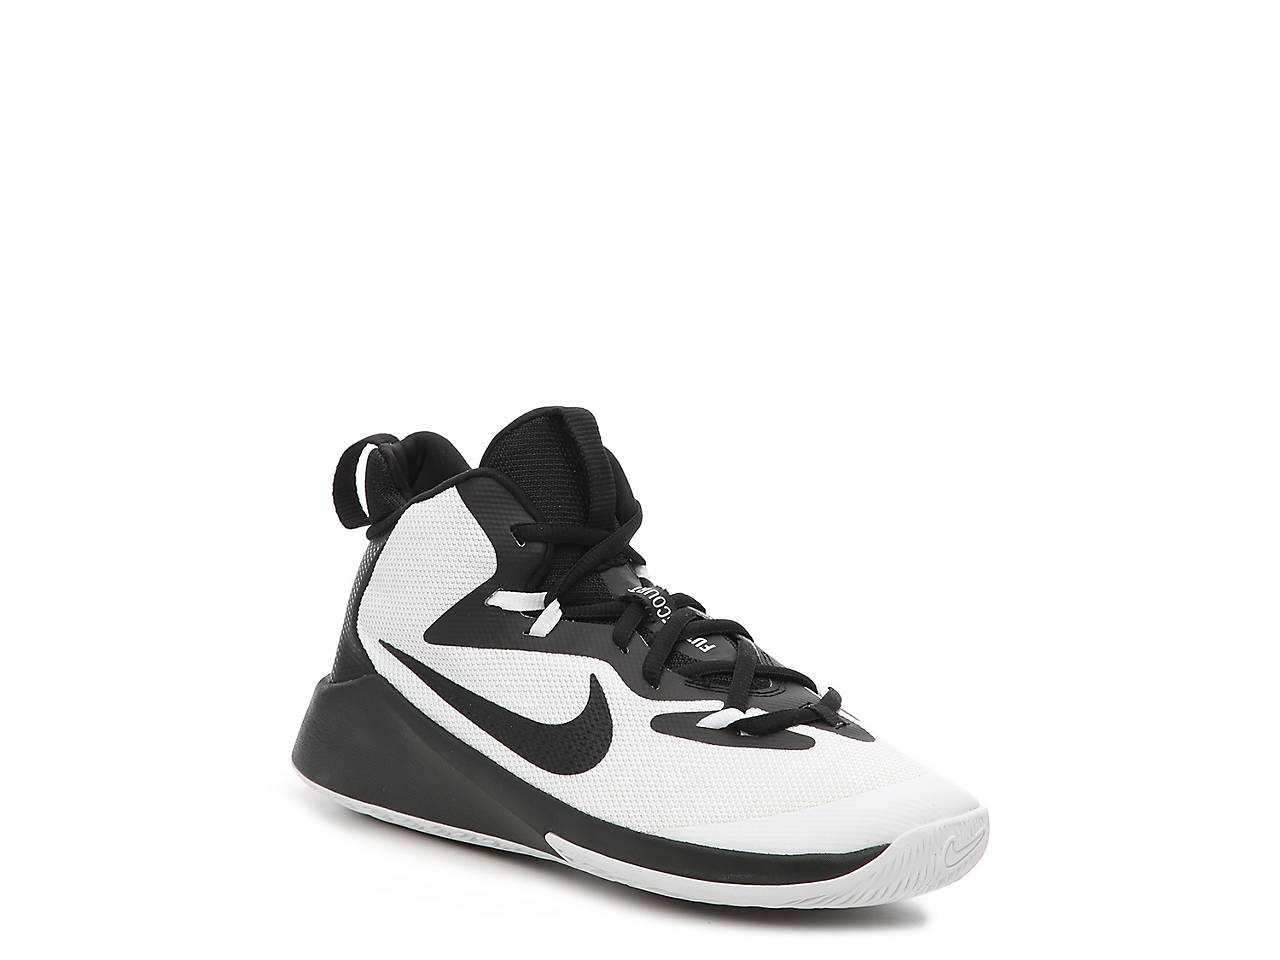 42954f4952 Nike Future Court Youth Basketball Shoe Kids Shoes | DSW